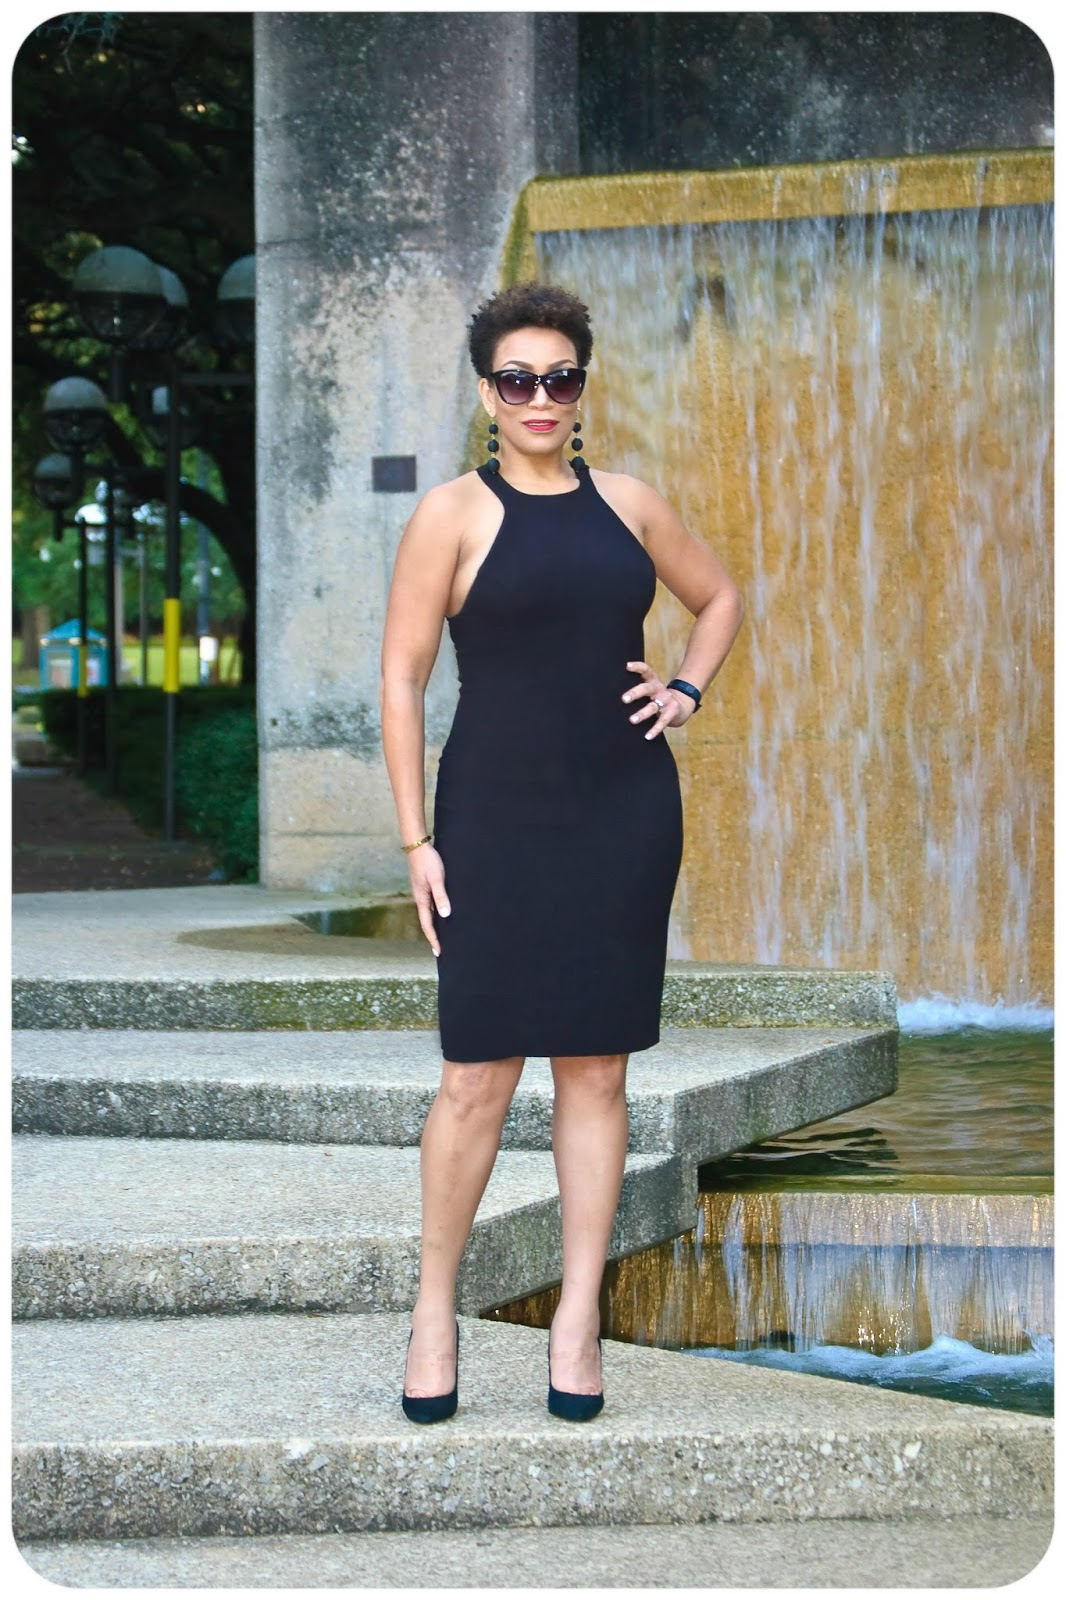 Vogue 2606 | The PERFECT Little Black Dress - Erica Bunker DIY Style!